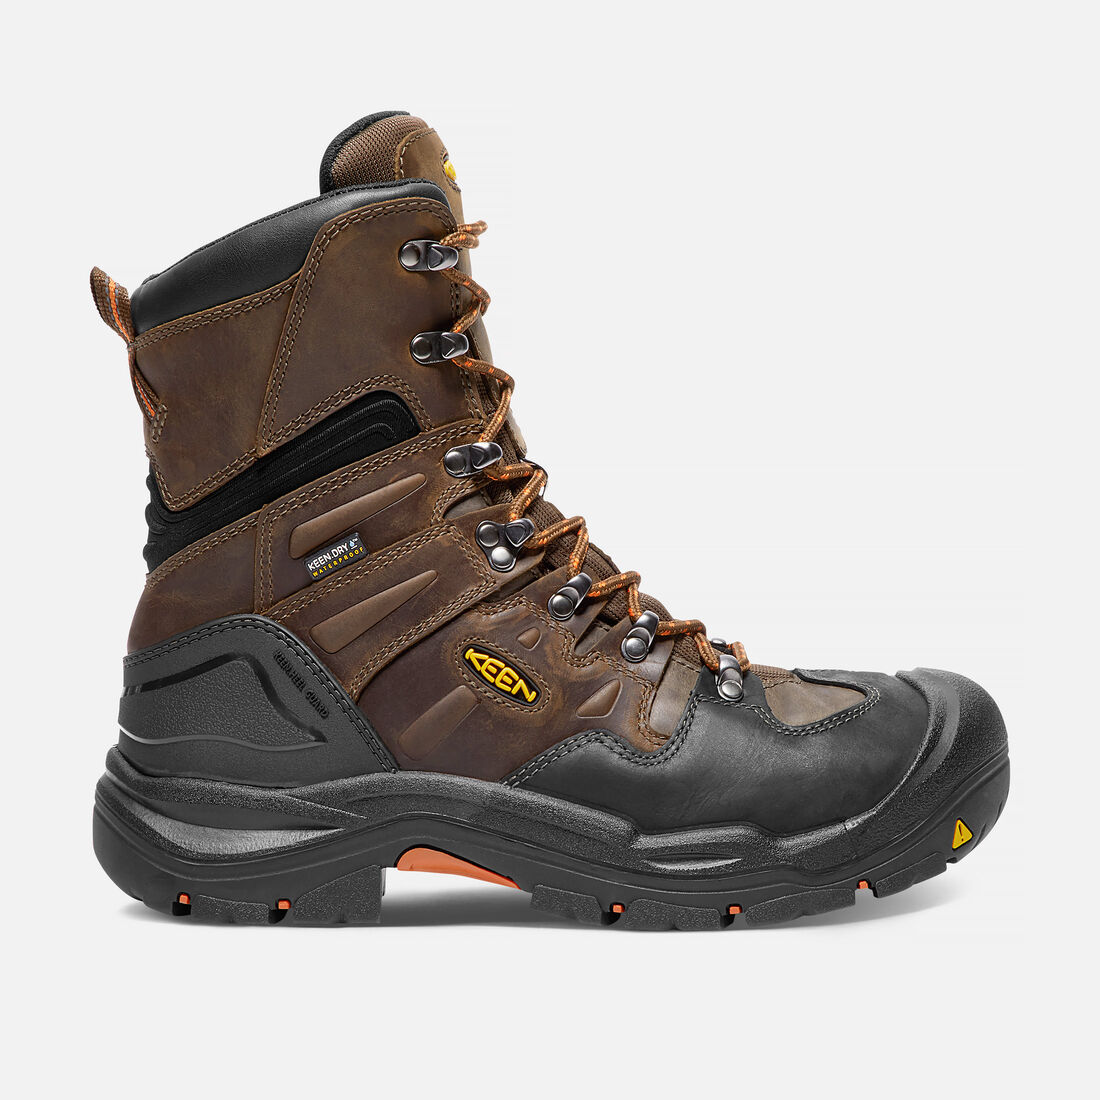 Men's COBURG 8' Waterproof (Steel Toe) in Cascade Brown/Brindle - large view.